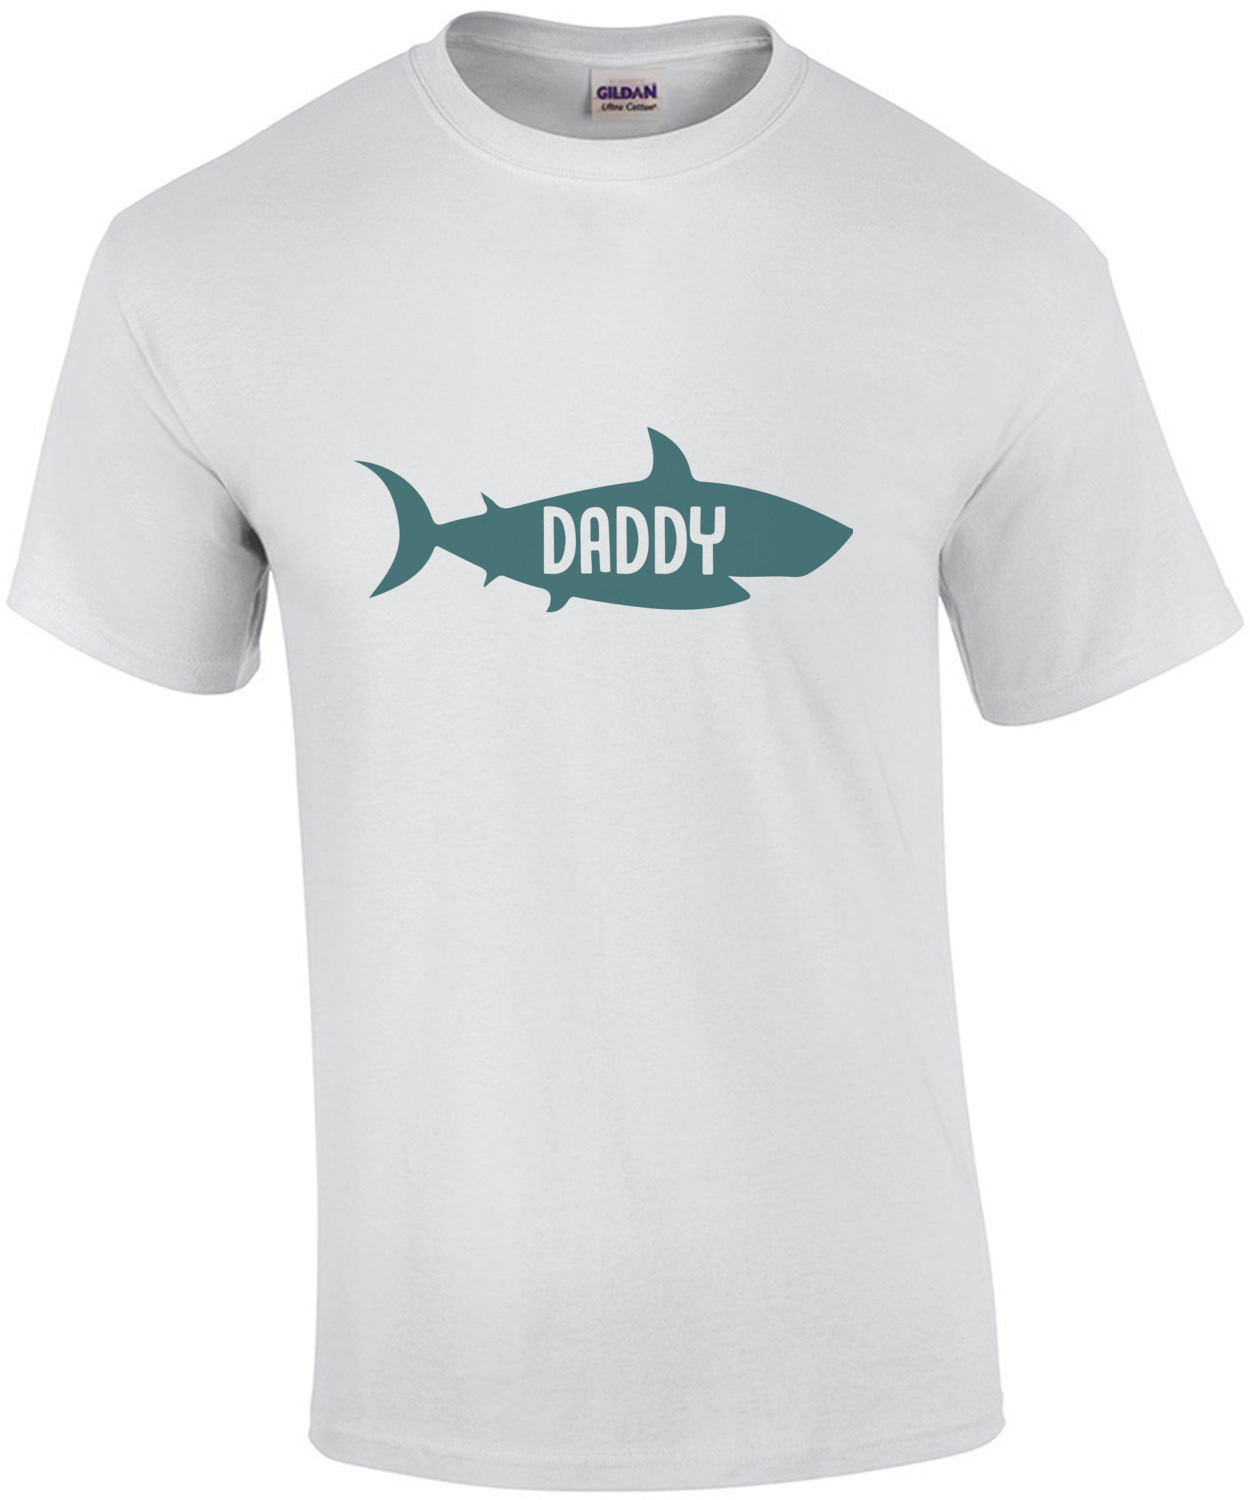 Daddy - Shark Family T-Shirt